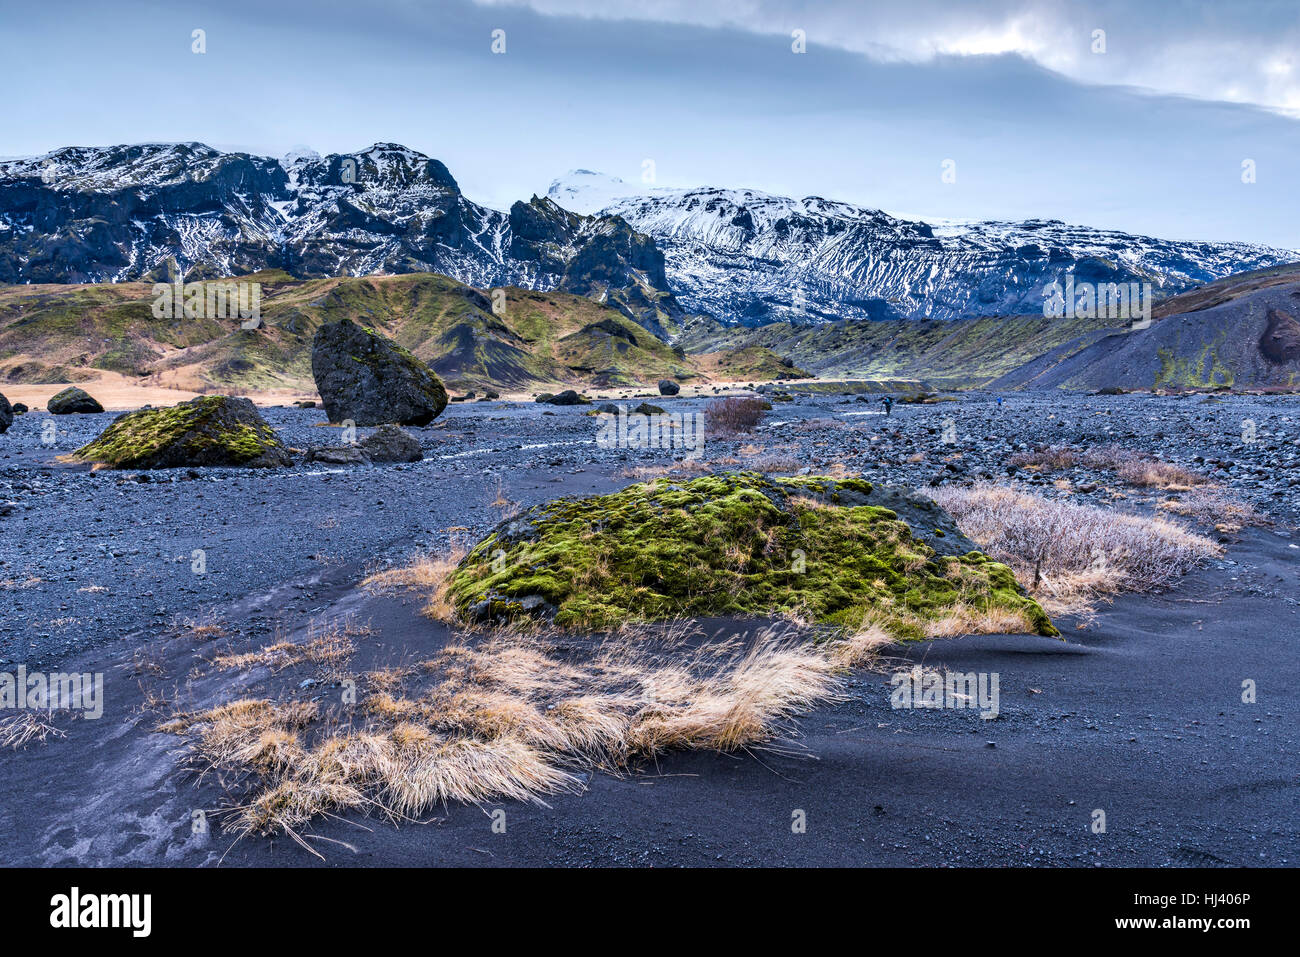 Wilderness mountain countryside in Iceland during a stormy afternoon shows the barren look of a volcanic landscape - Stock Image